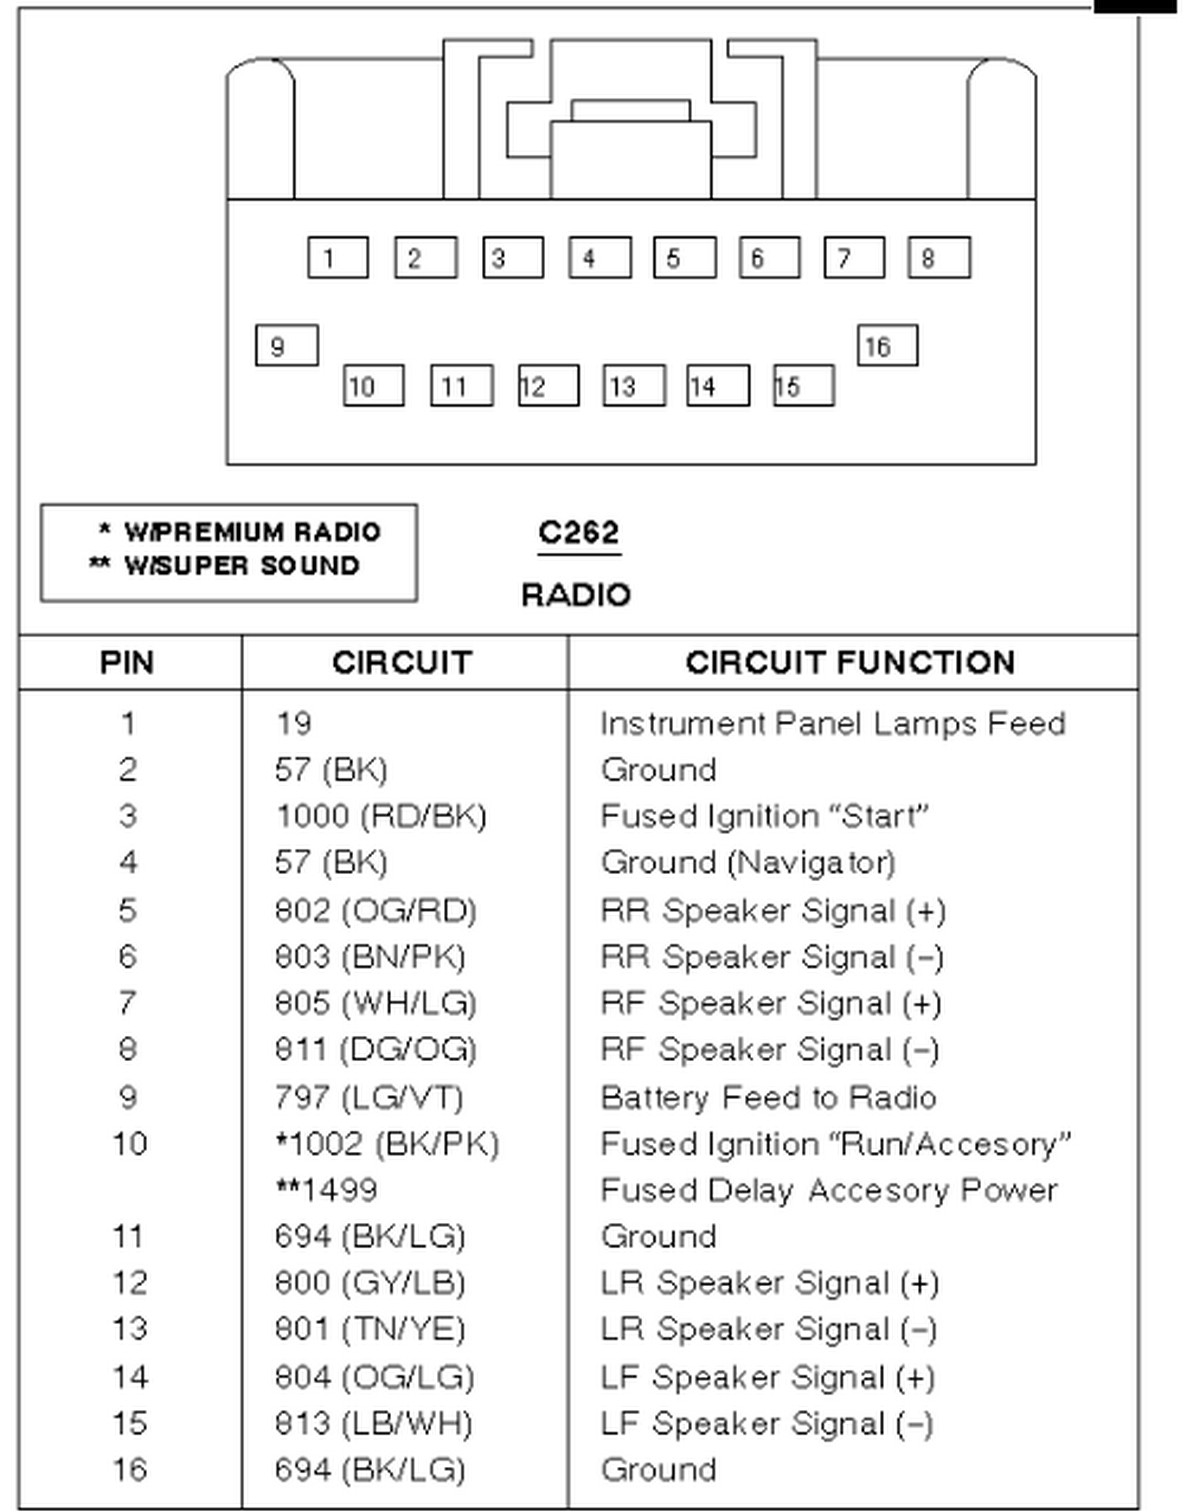 2011 ford escape radio wiring diagram 2003 ford focus radio wiring diagram 4a 2011 ford focus radio wiring diagram free download \u2022 oasis dl co